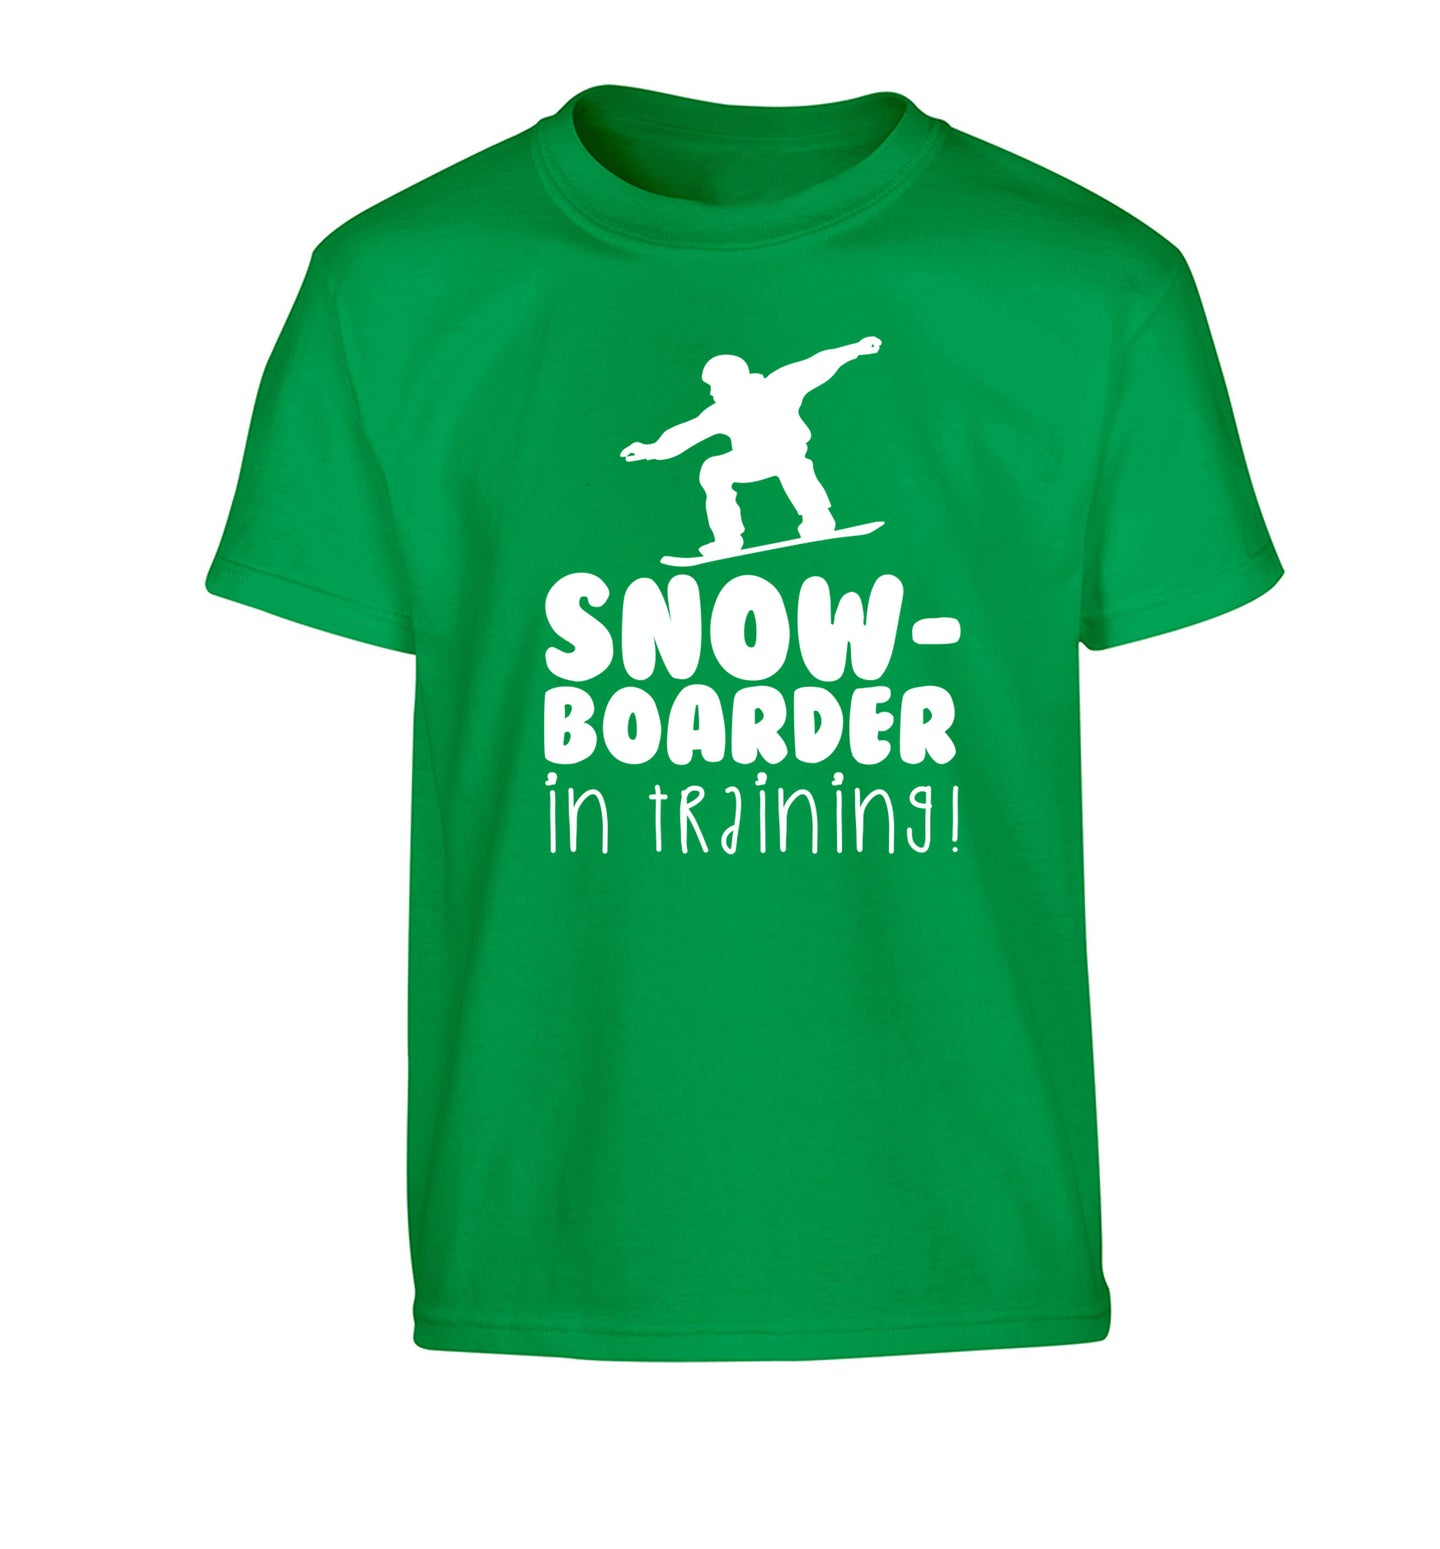 Snowboarder in training Children's green Tshirt 12-14 Years